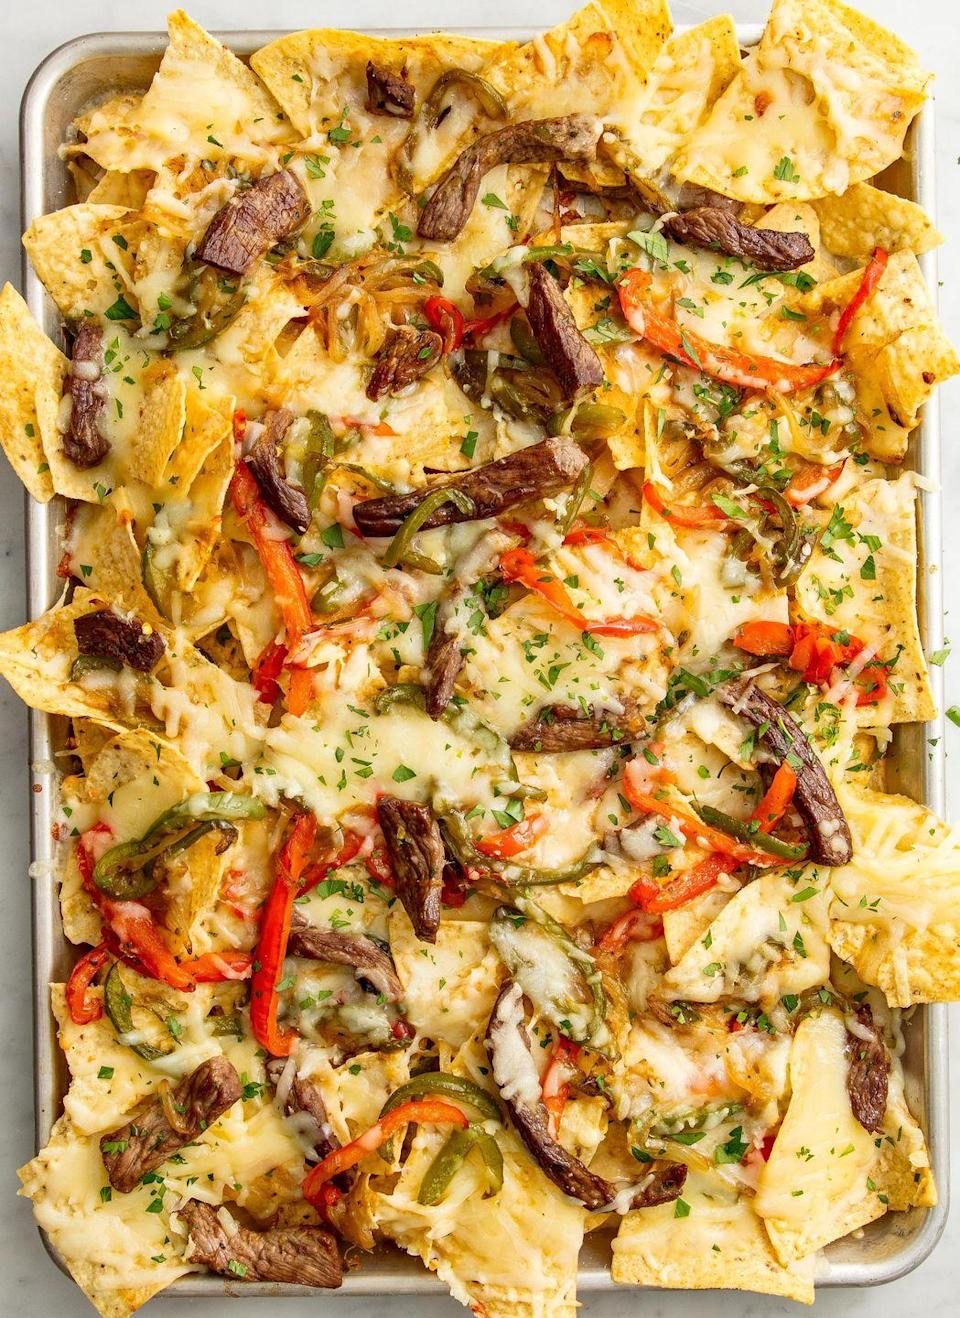 """<p>Proof that everything is better in nacho form.</p><p>Get the recipe from <a href=""""https://www.delish.com/cooking/recipe-ideas/recipes/a51879/philly-cheesesteak-nachos-recipe/"""" rel=""""nofollow noopener"""" target=""""_blank"""" data-ylk=""""slk:Delish"""" class=""""link rapid-noclick-resp"""">Delish</a>.</p>"""